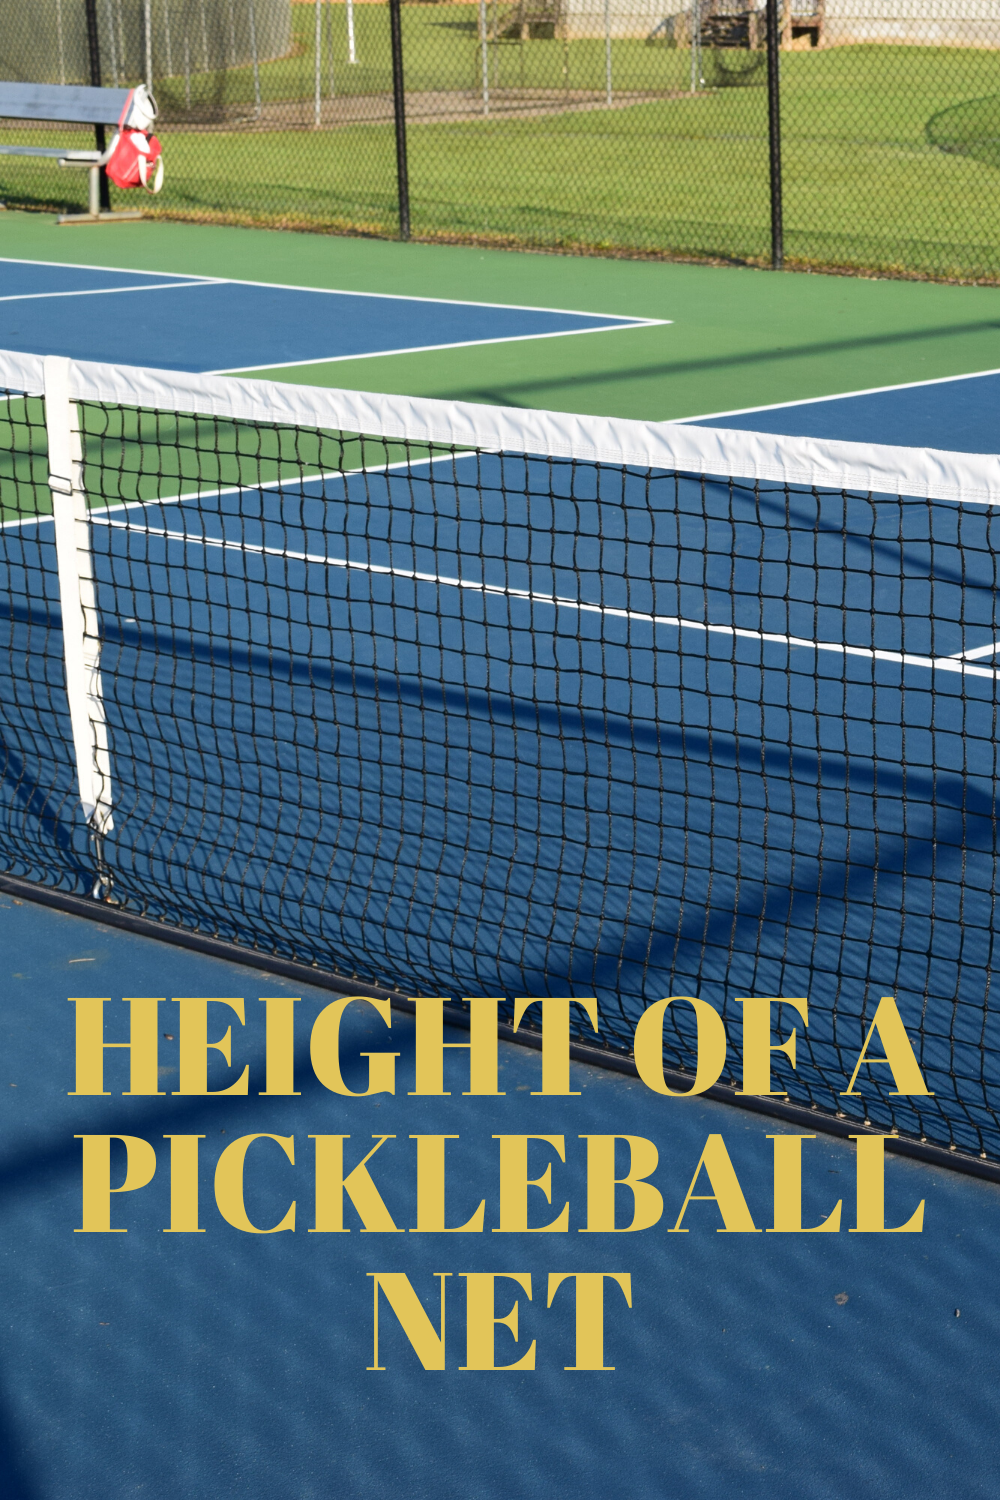 Pin On Pickleball Drive